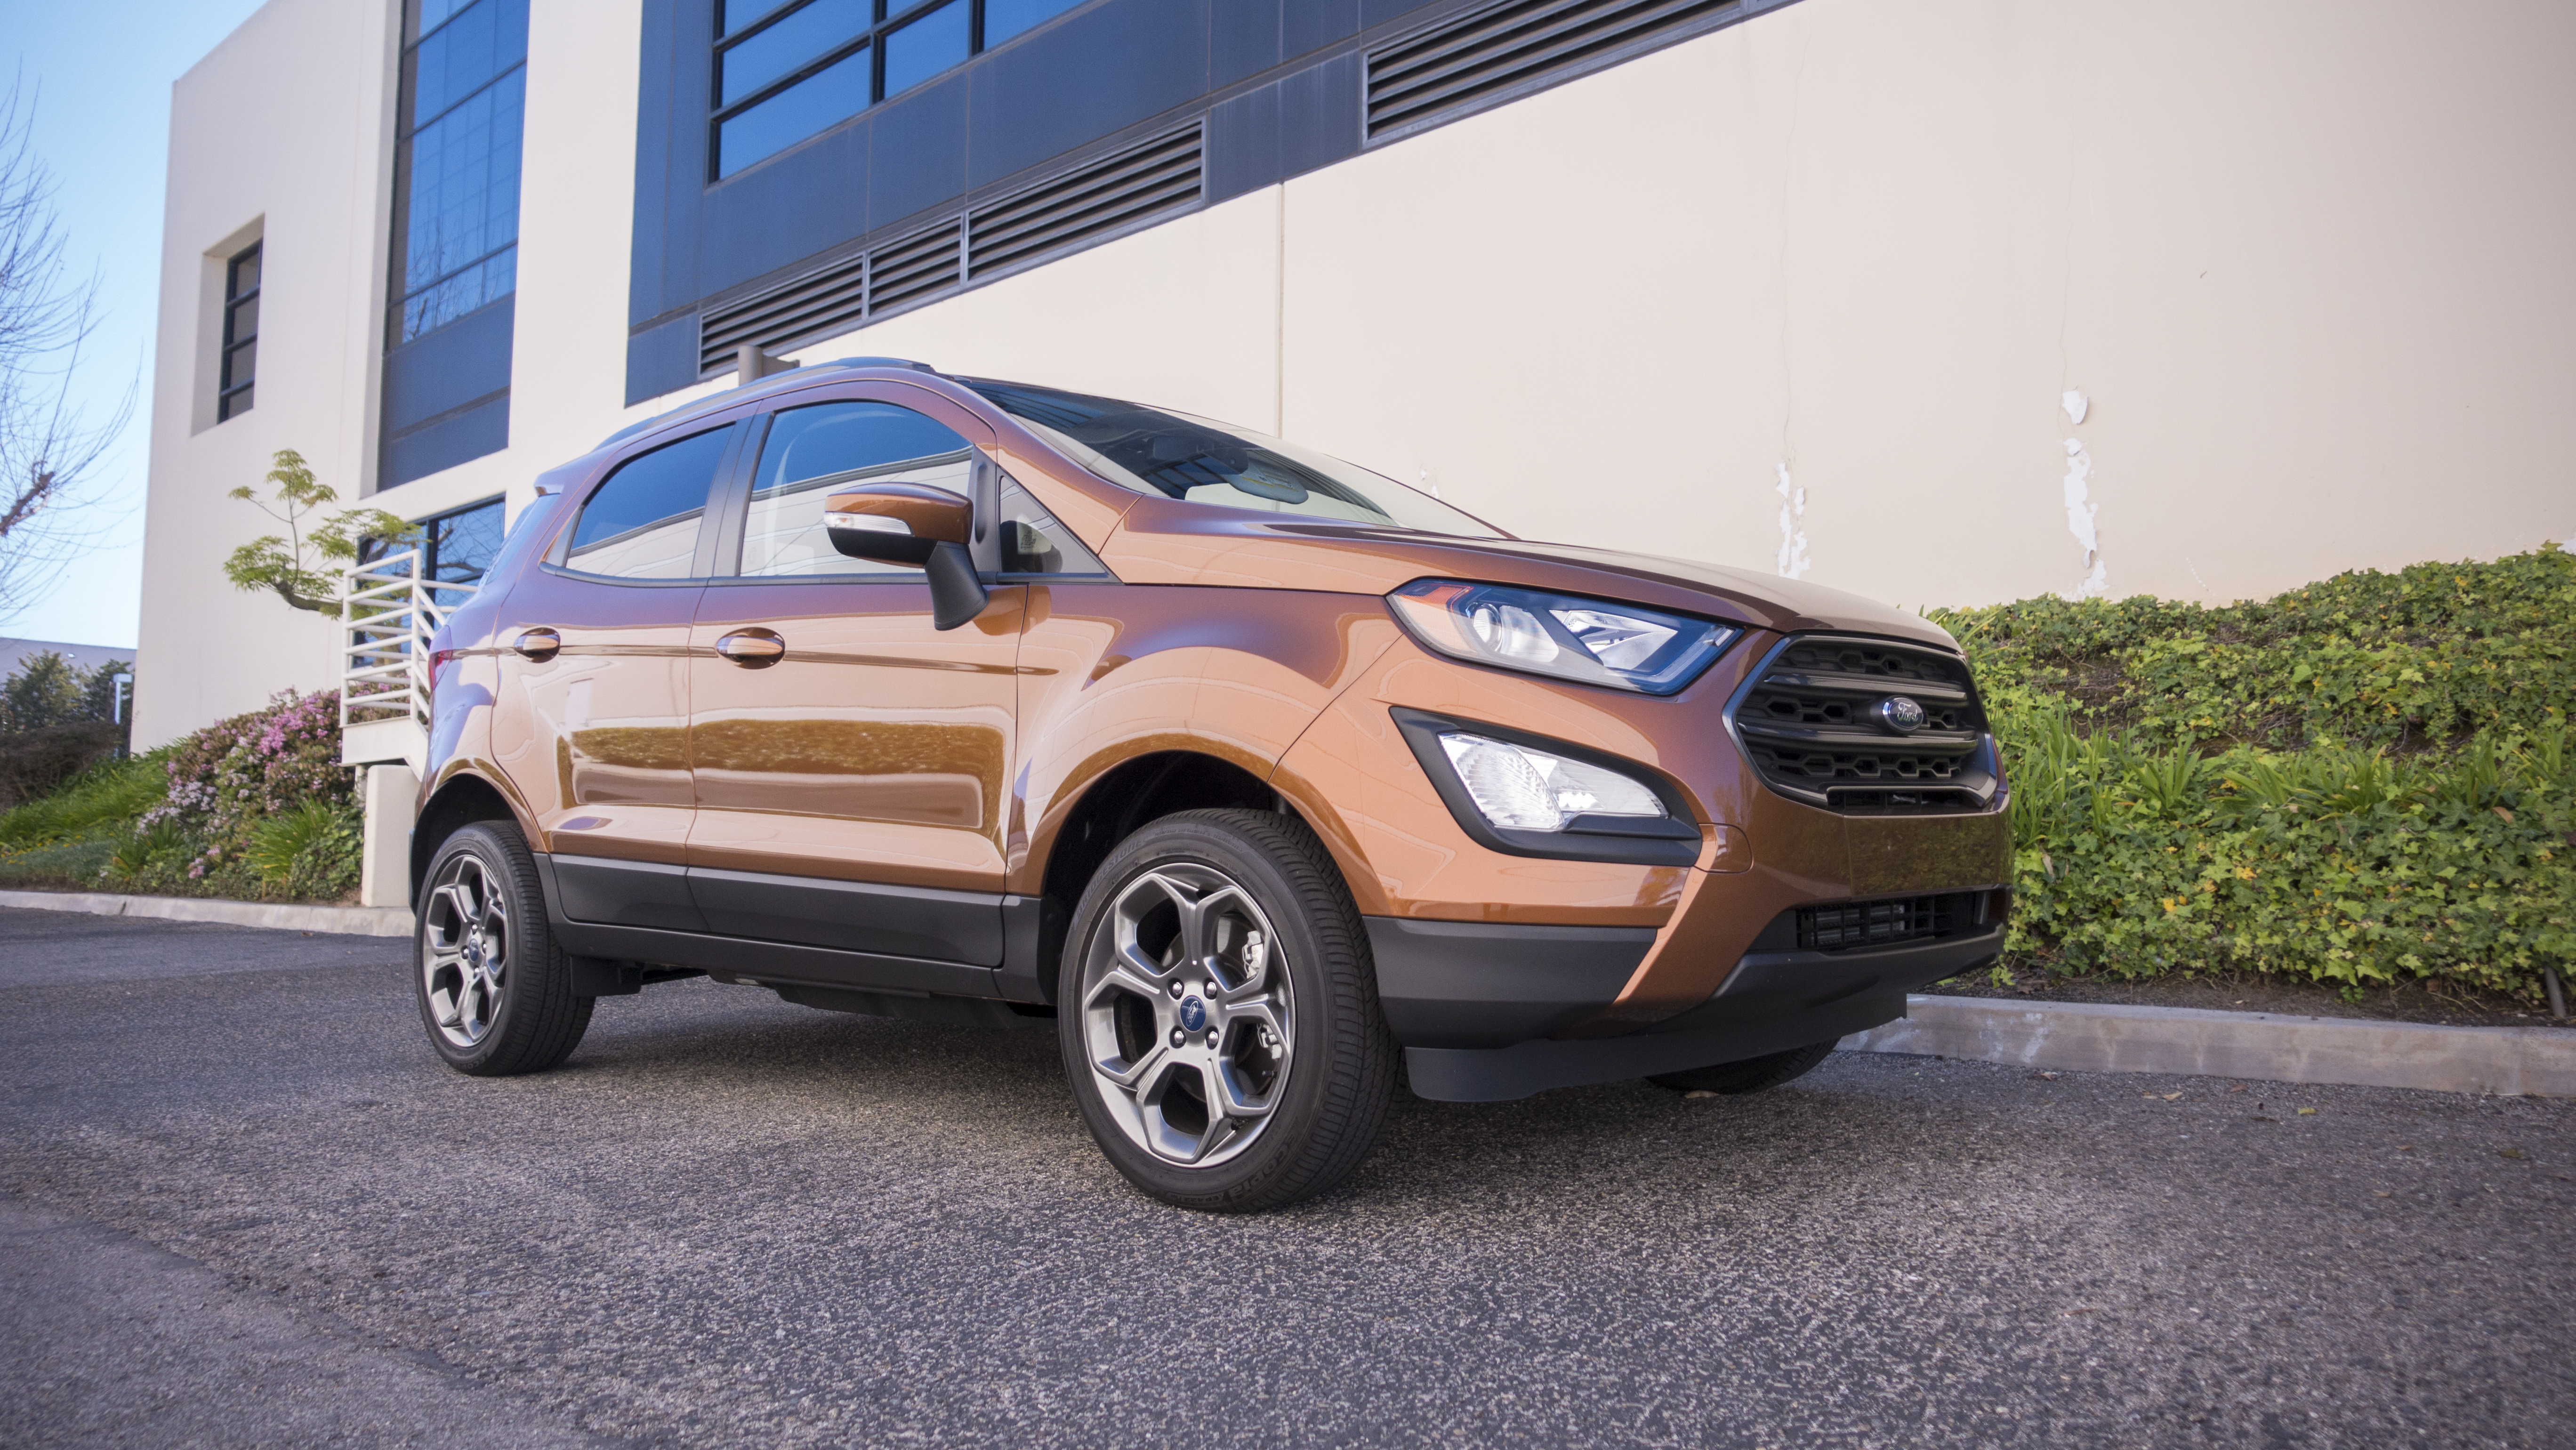 Ford's 2018 EcoSport